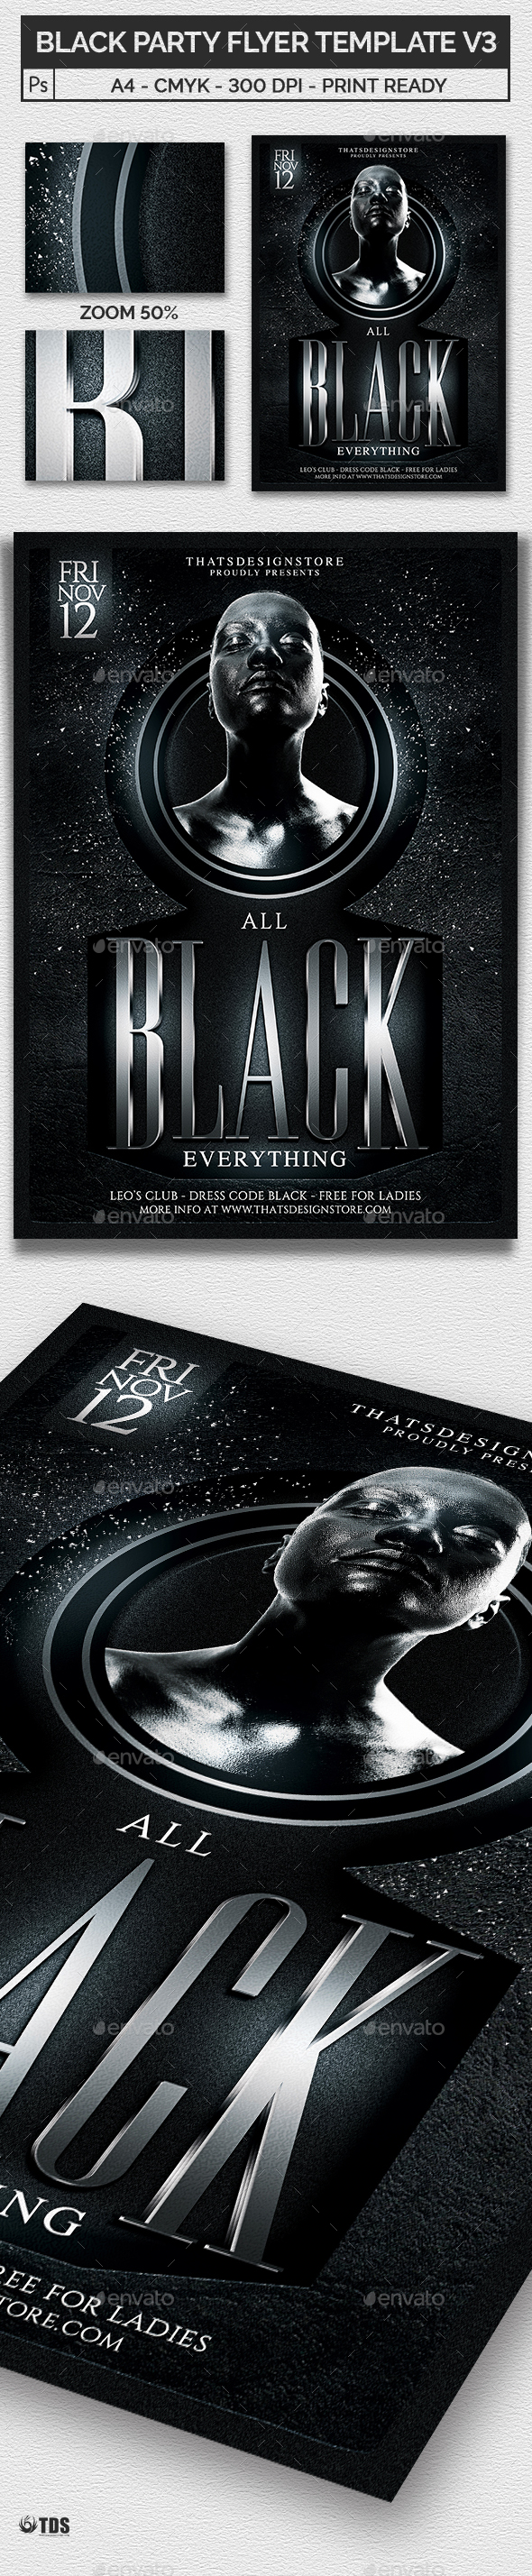 Black Party Flyer Template V3 - Clubs & Parties Events